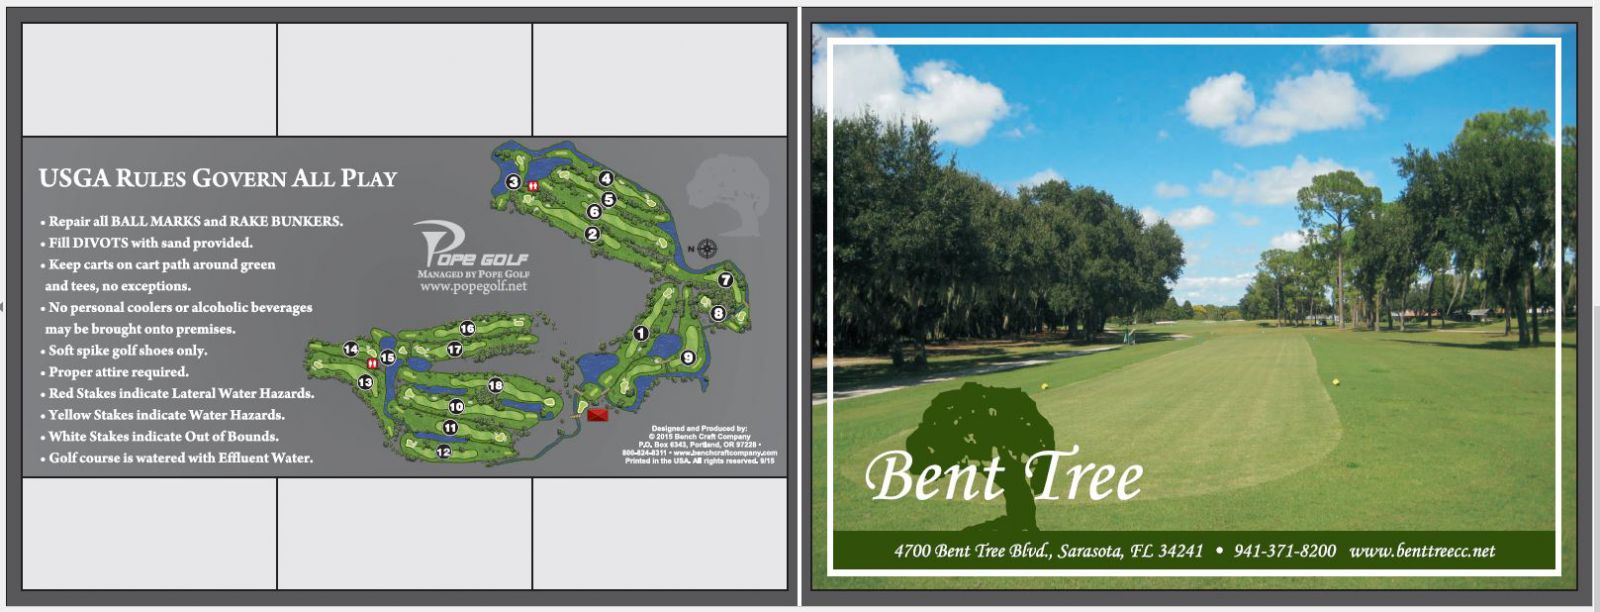 us open qualifiers have been hosted at bent tree in the past and the florida state high school championship was played at bent tree in 1998 and 1999